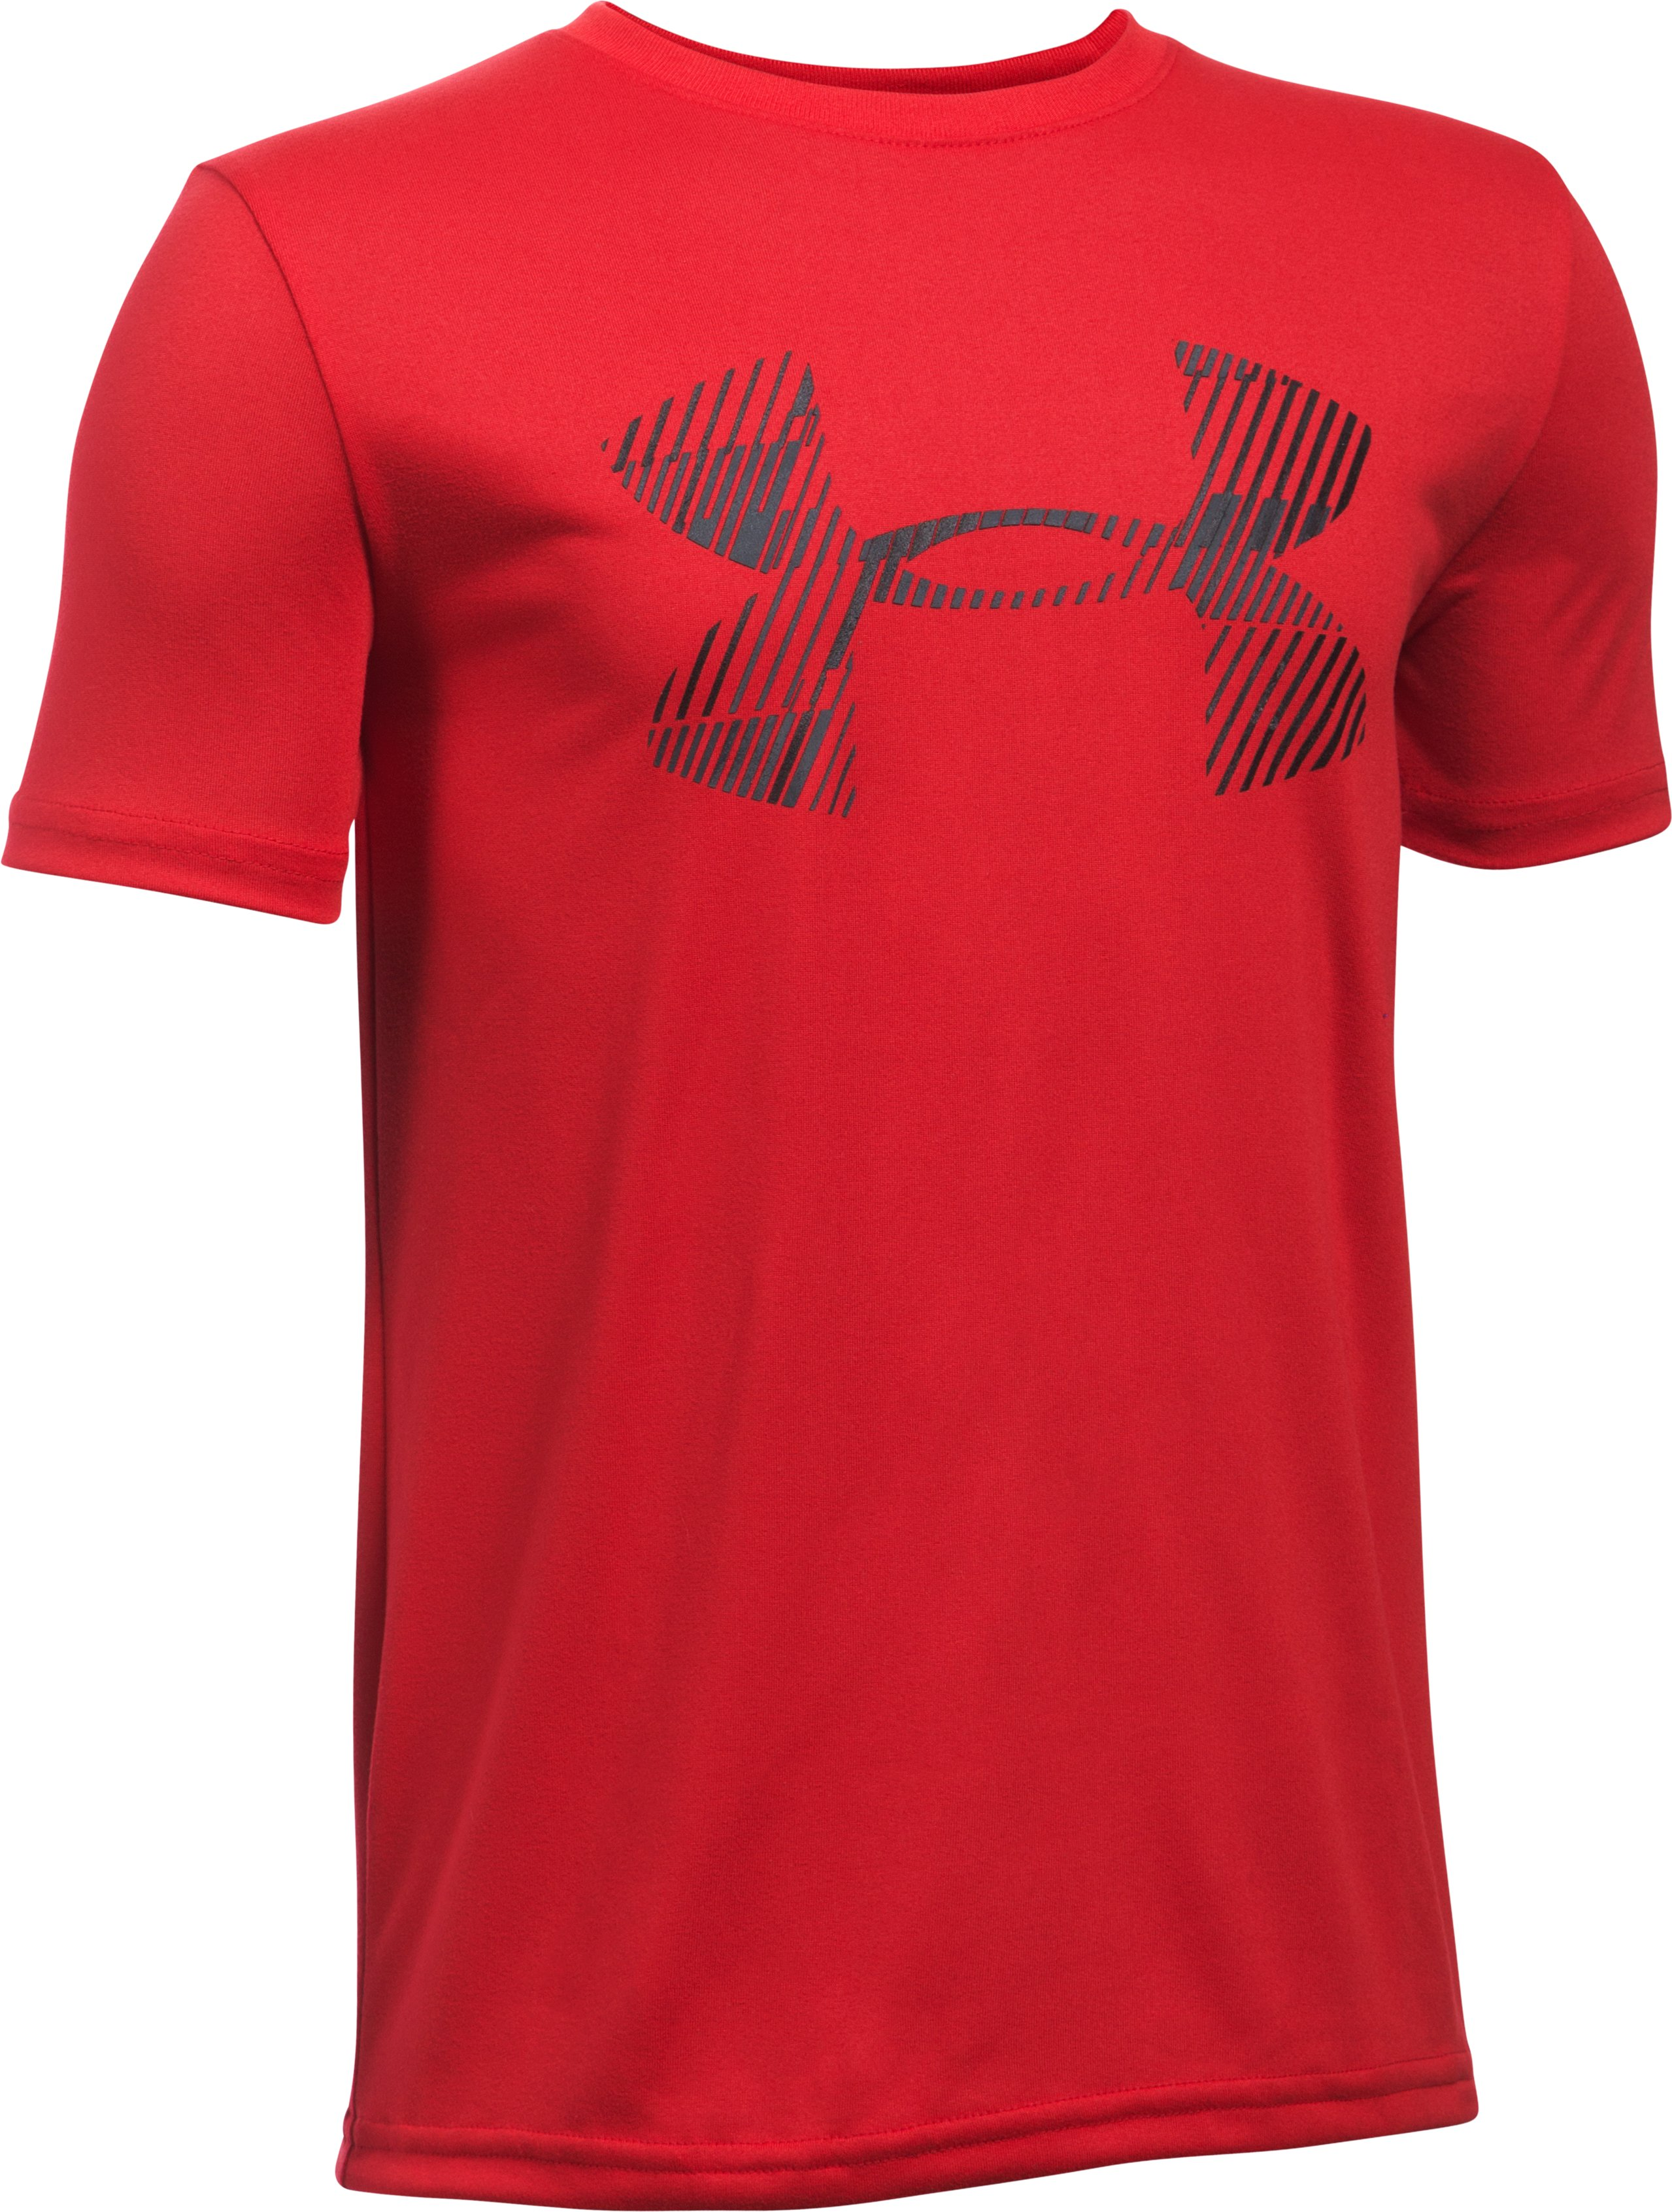 Boys' UA Combo Logo Short Sleeve T-Shirt, Red, undefined